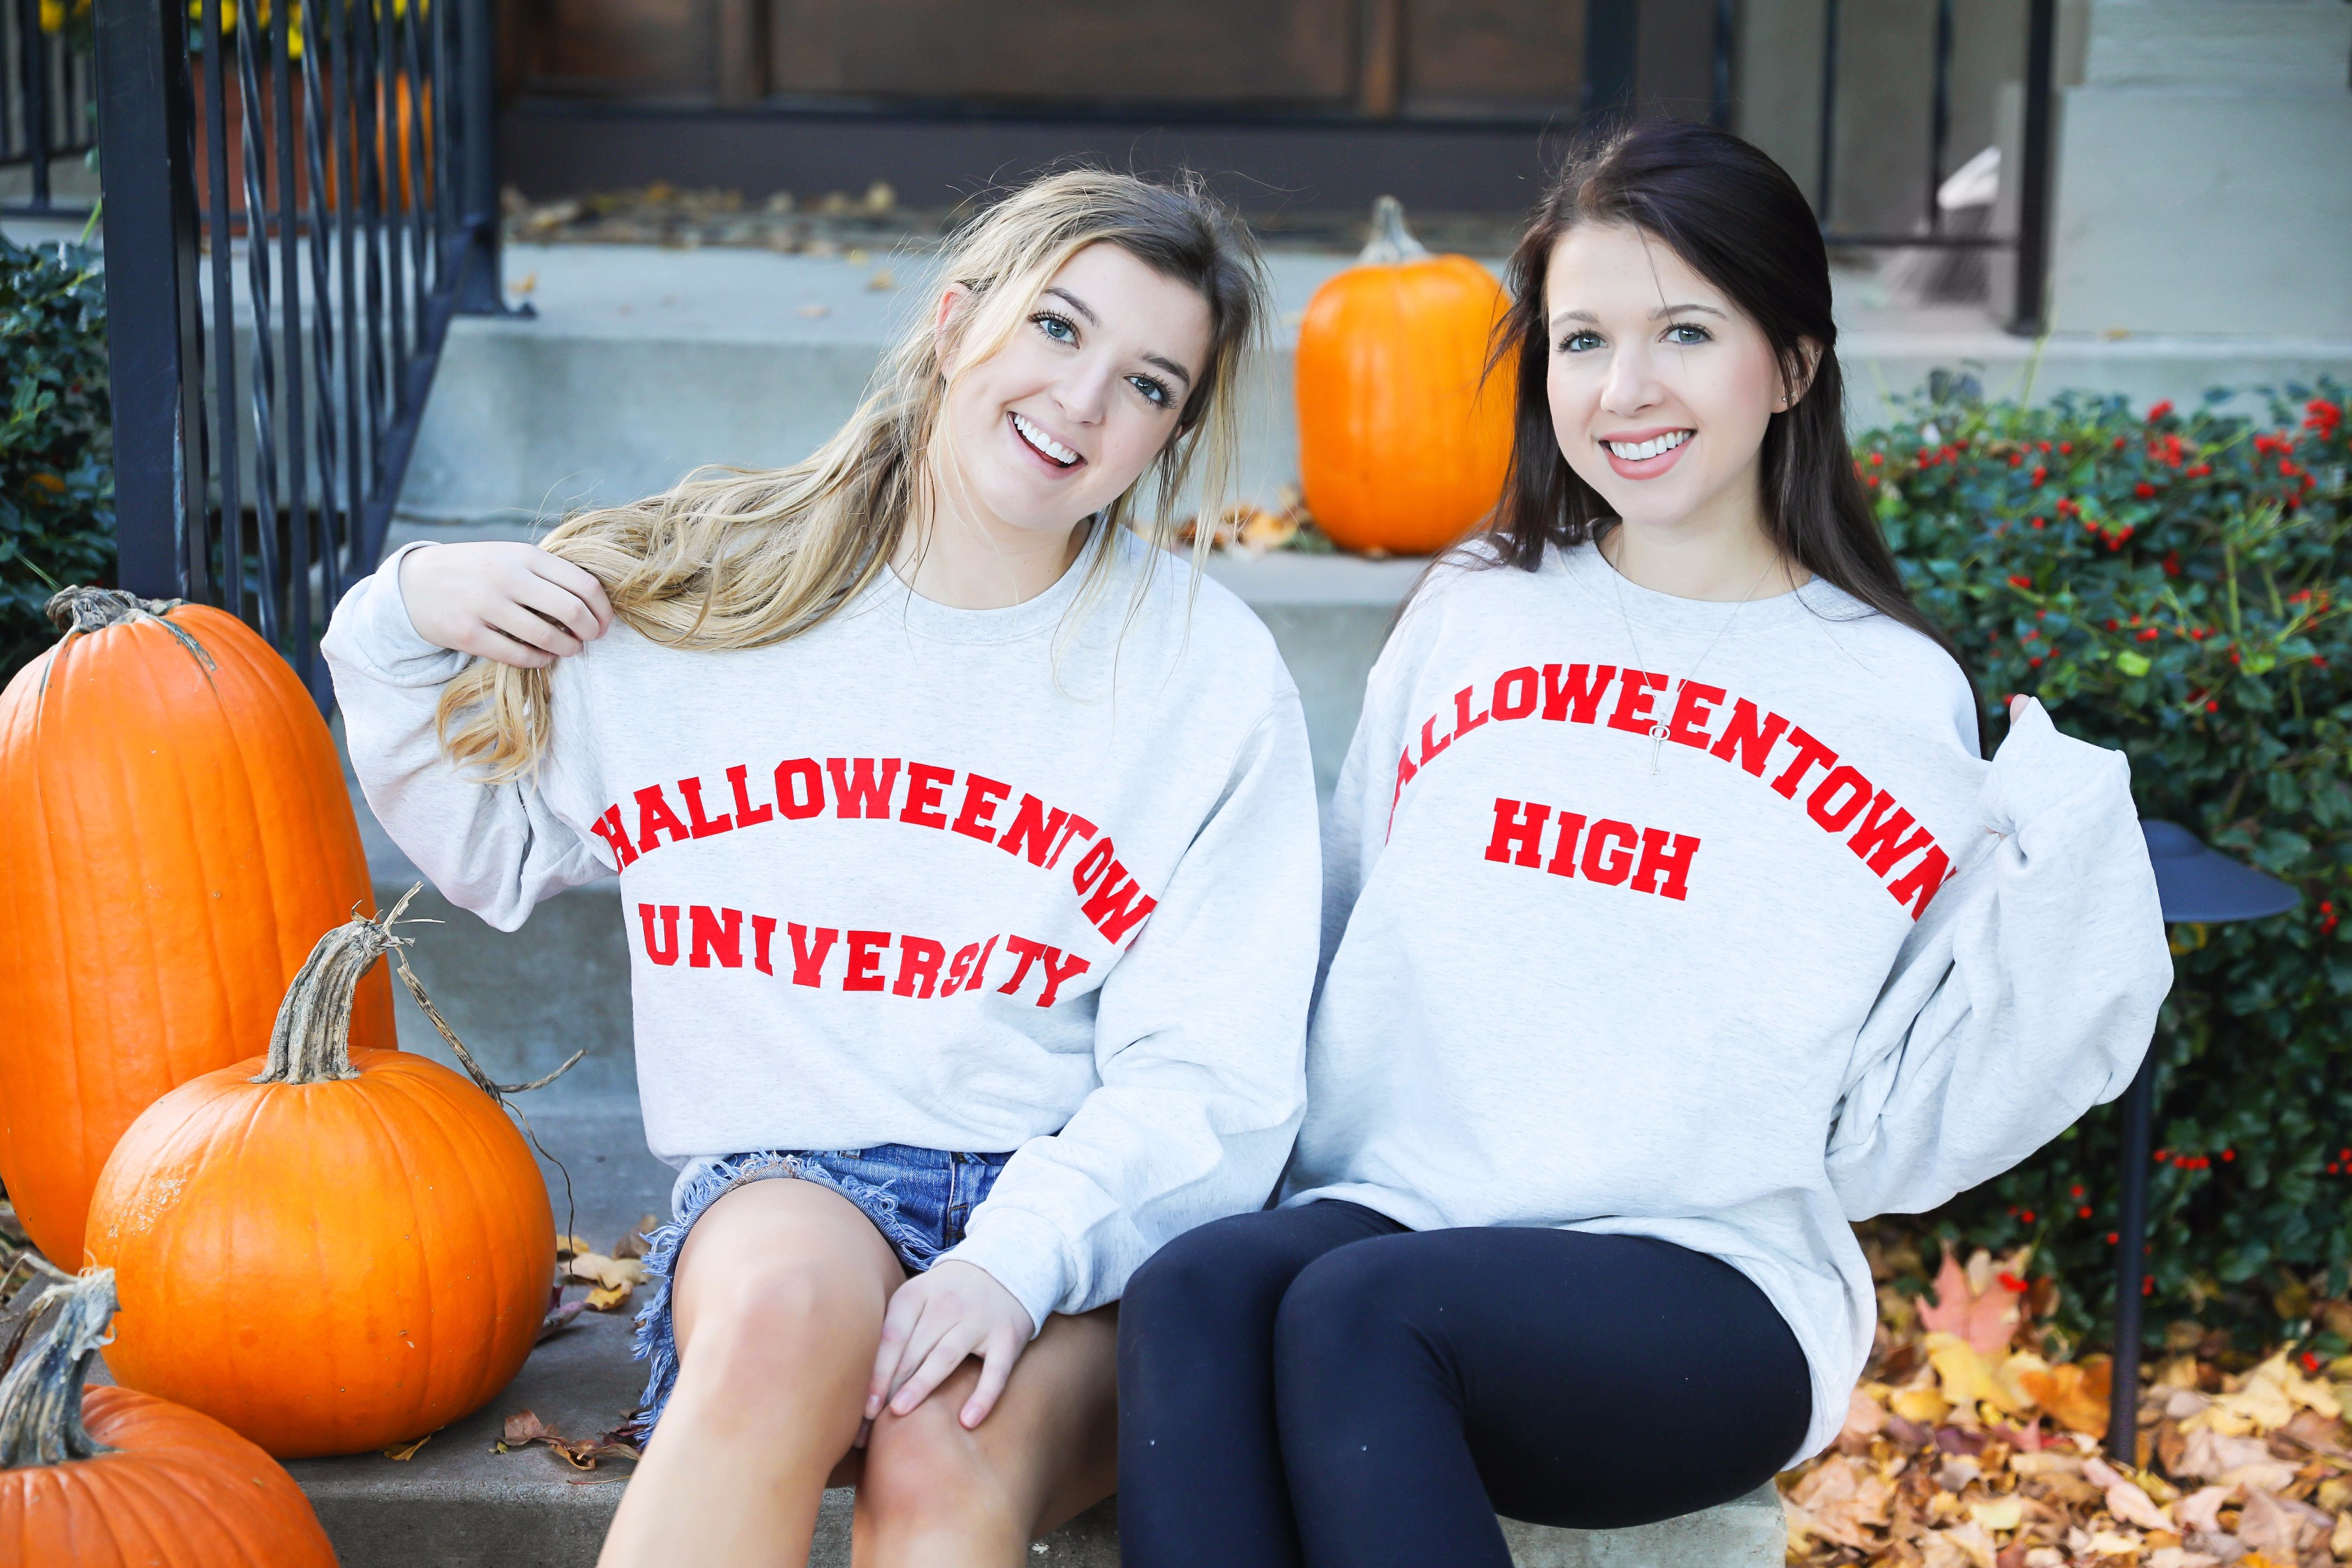 Halloweentown univeristy sweatshirt DIY! Easy last minute halloween costumes details on fashion blog daily dose of charm by lauren lindmark